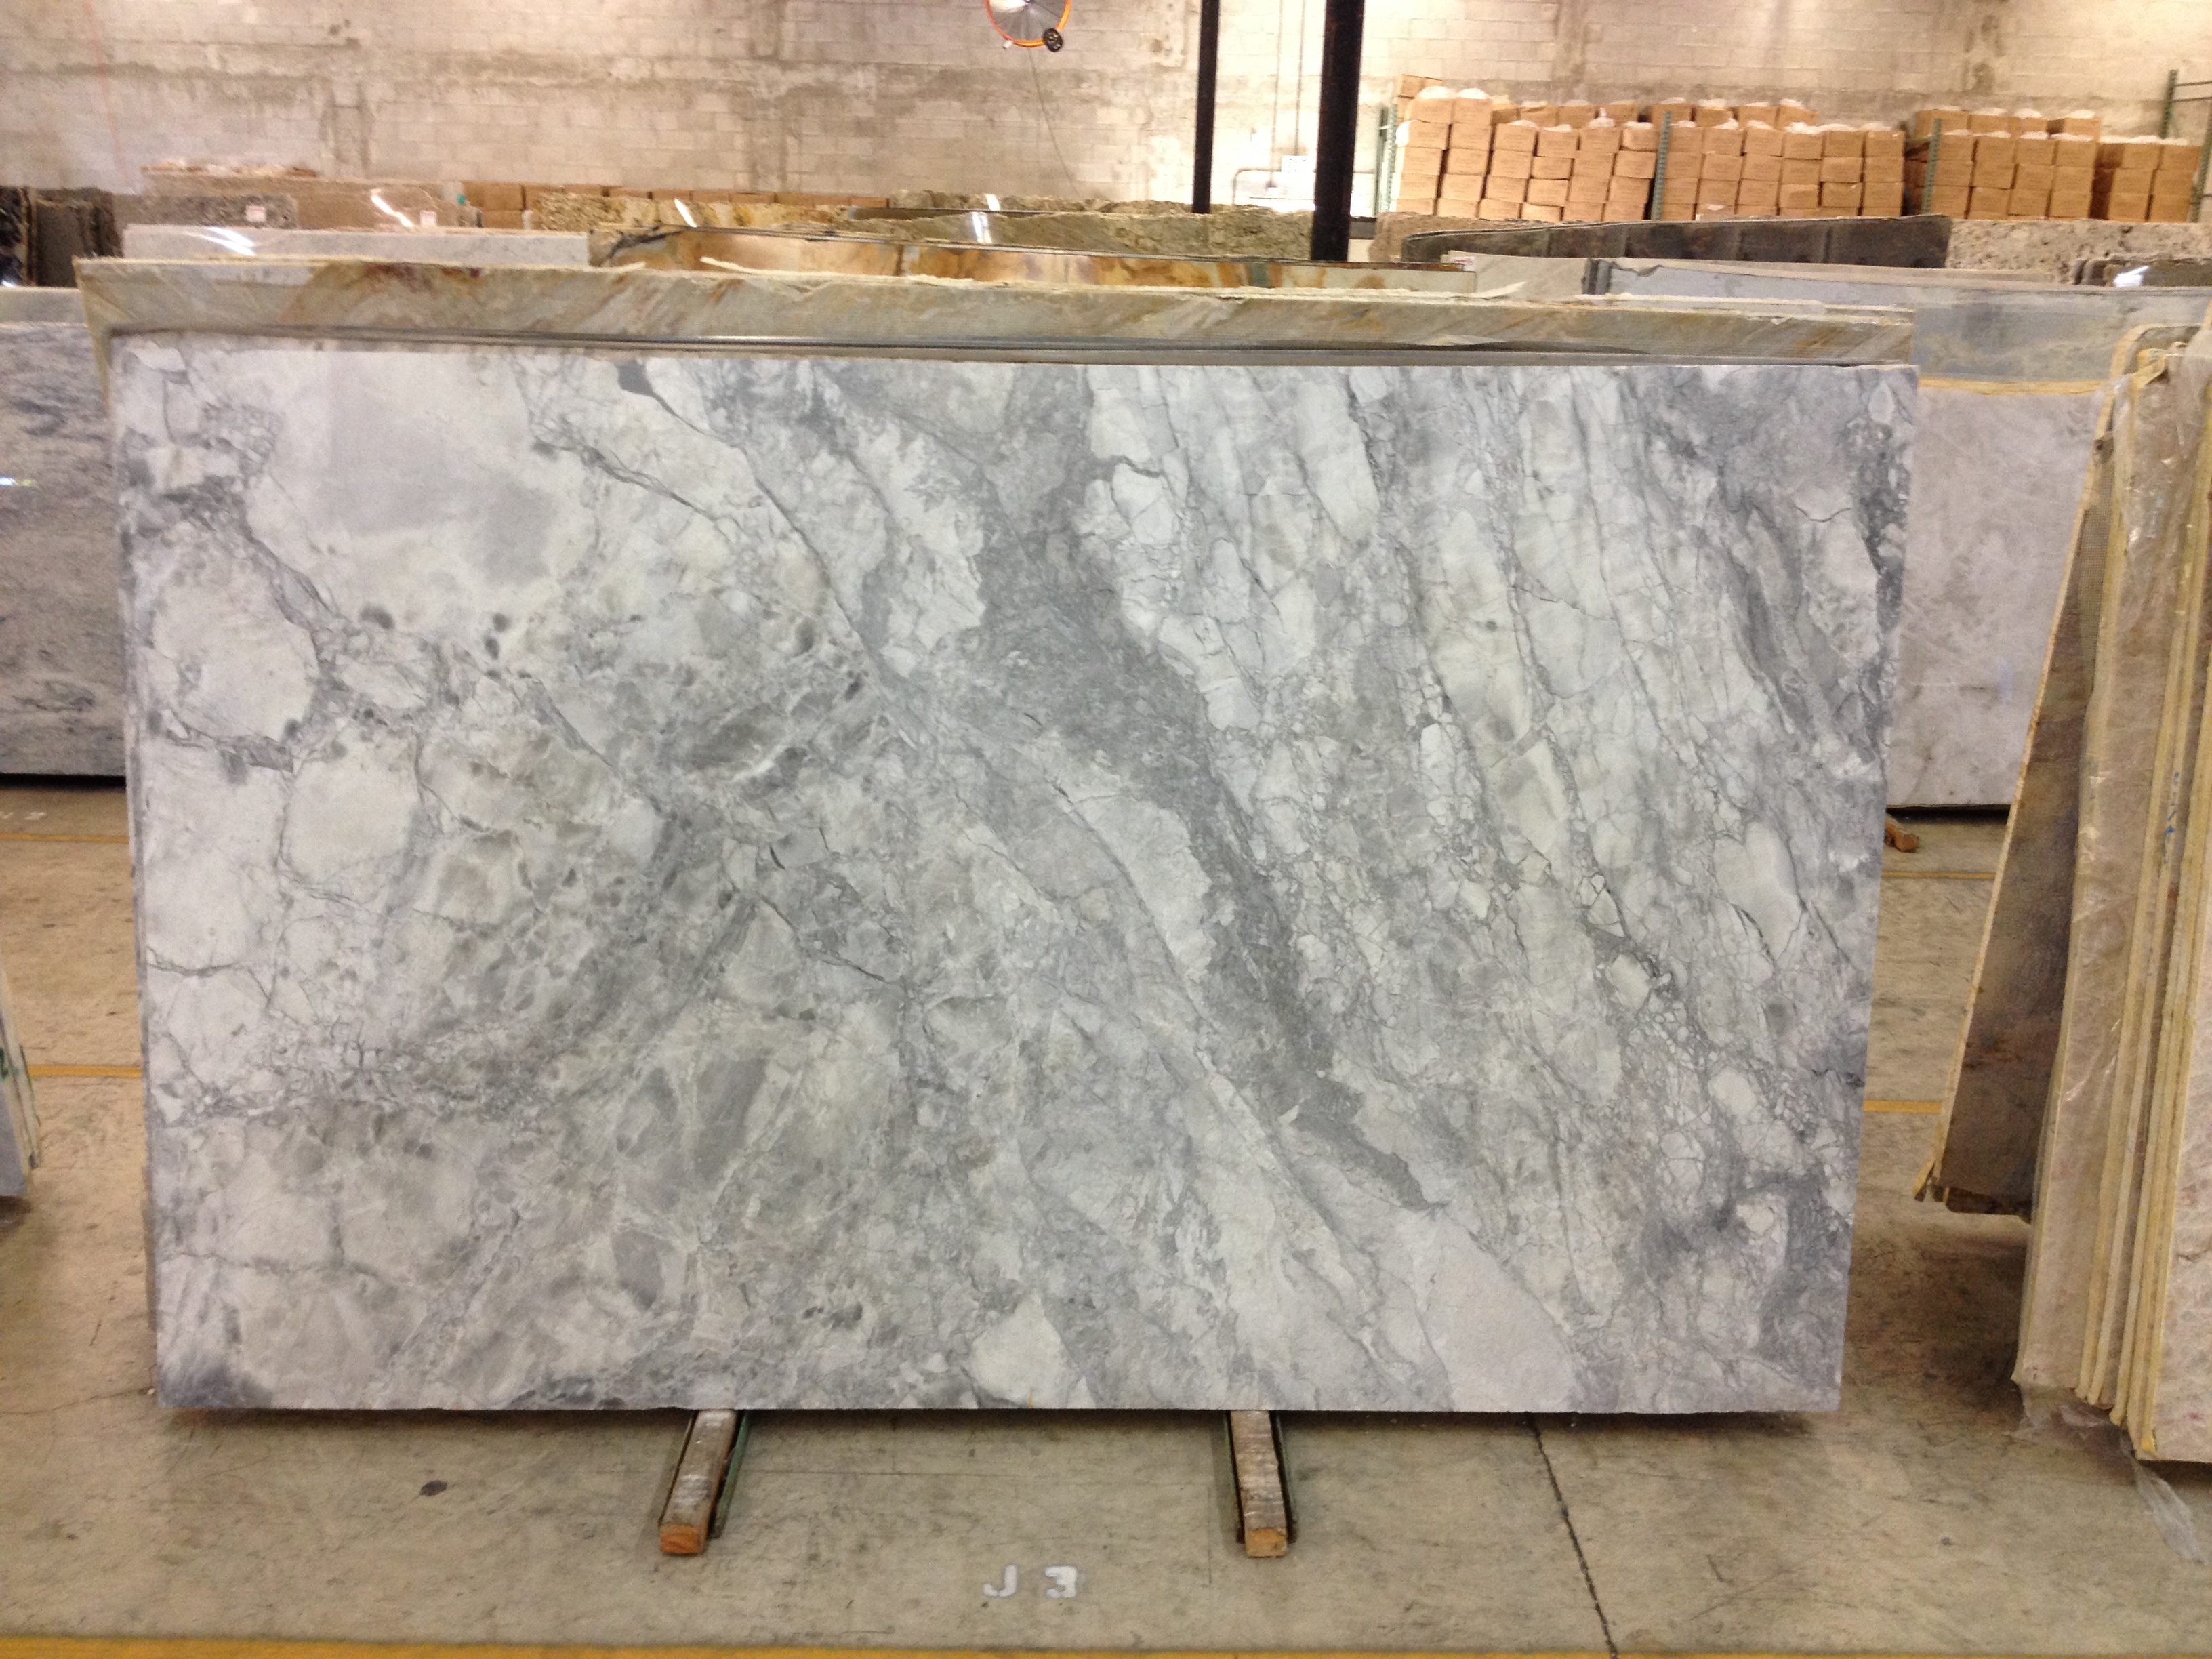 Super white supreme 3136 3cm Supreme white granite pictures